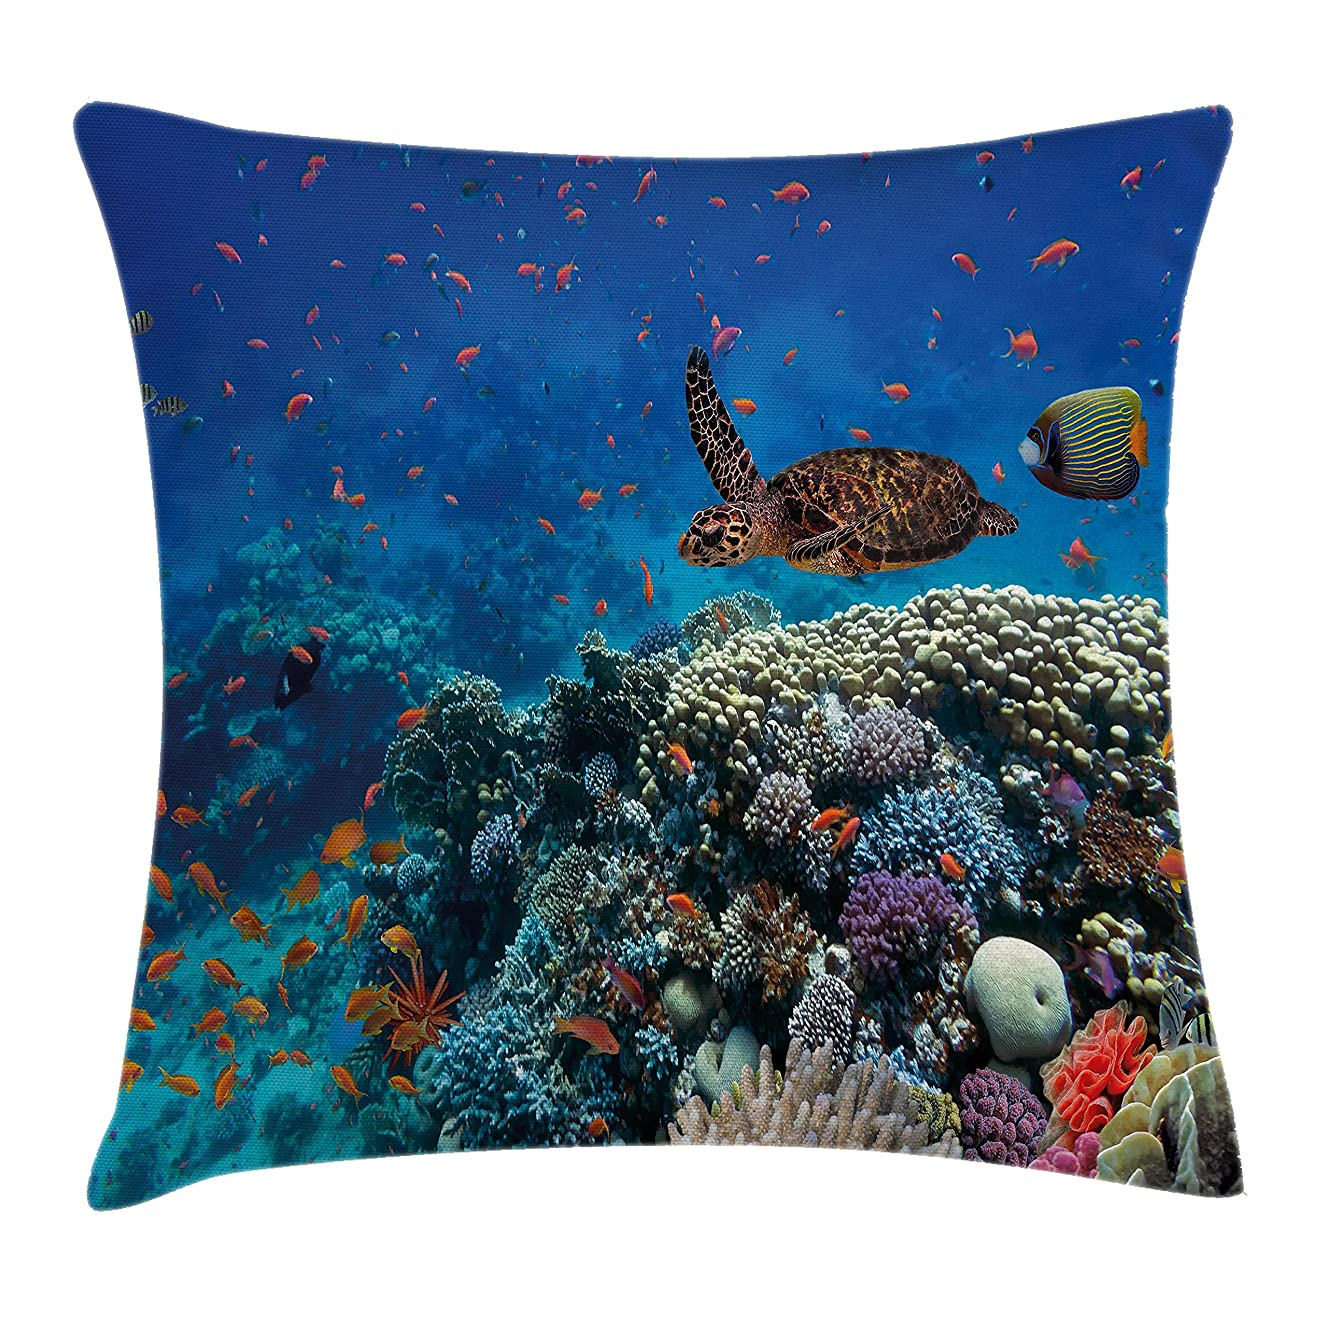 Ambesonne Ocean Decor Throw Pillow Cushion Cover, Exotic Fish and Turtle in Fresh Water on Stony Corals Bio Diversity Wild Life Photo, Decorative Square Accent Pillow Case, 20 X 20 Inches, Multi